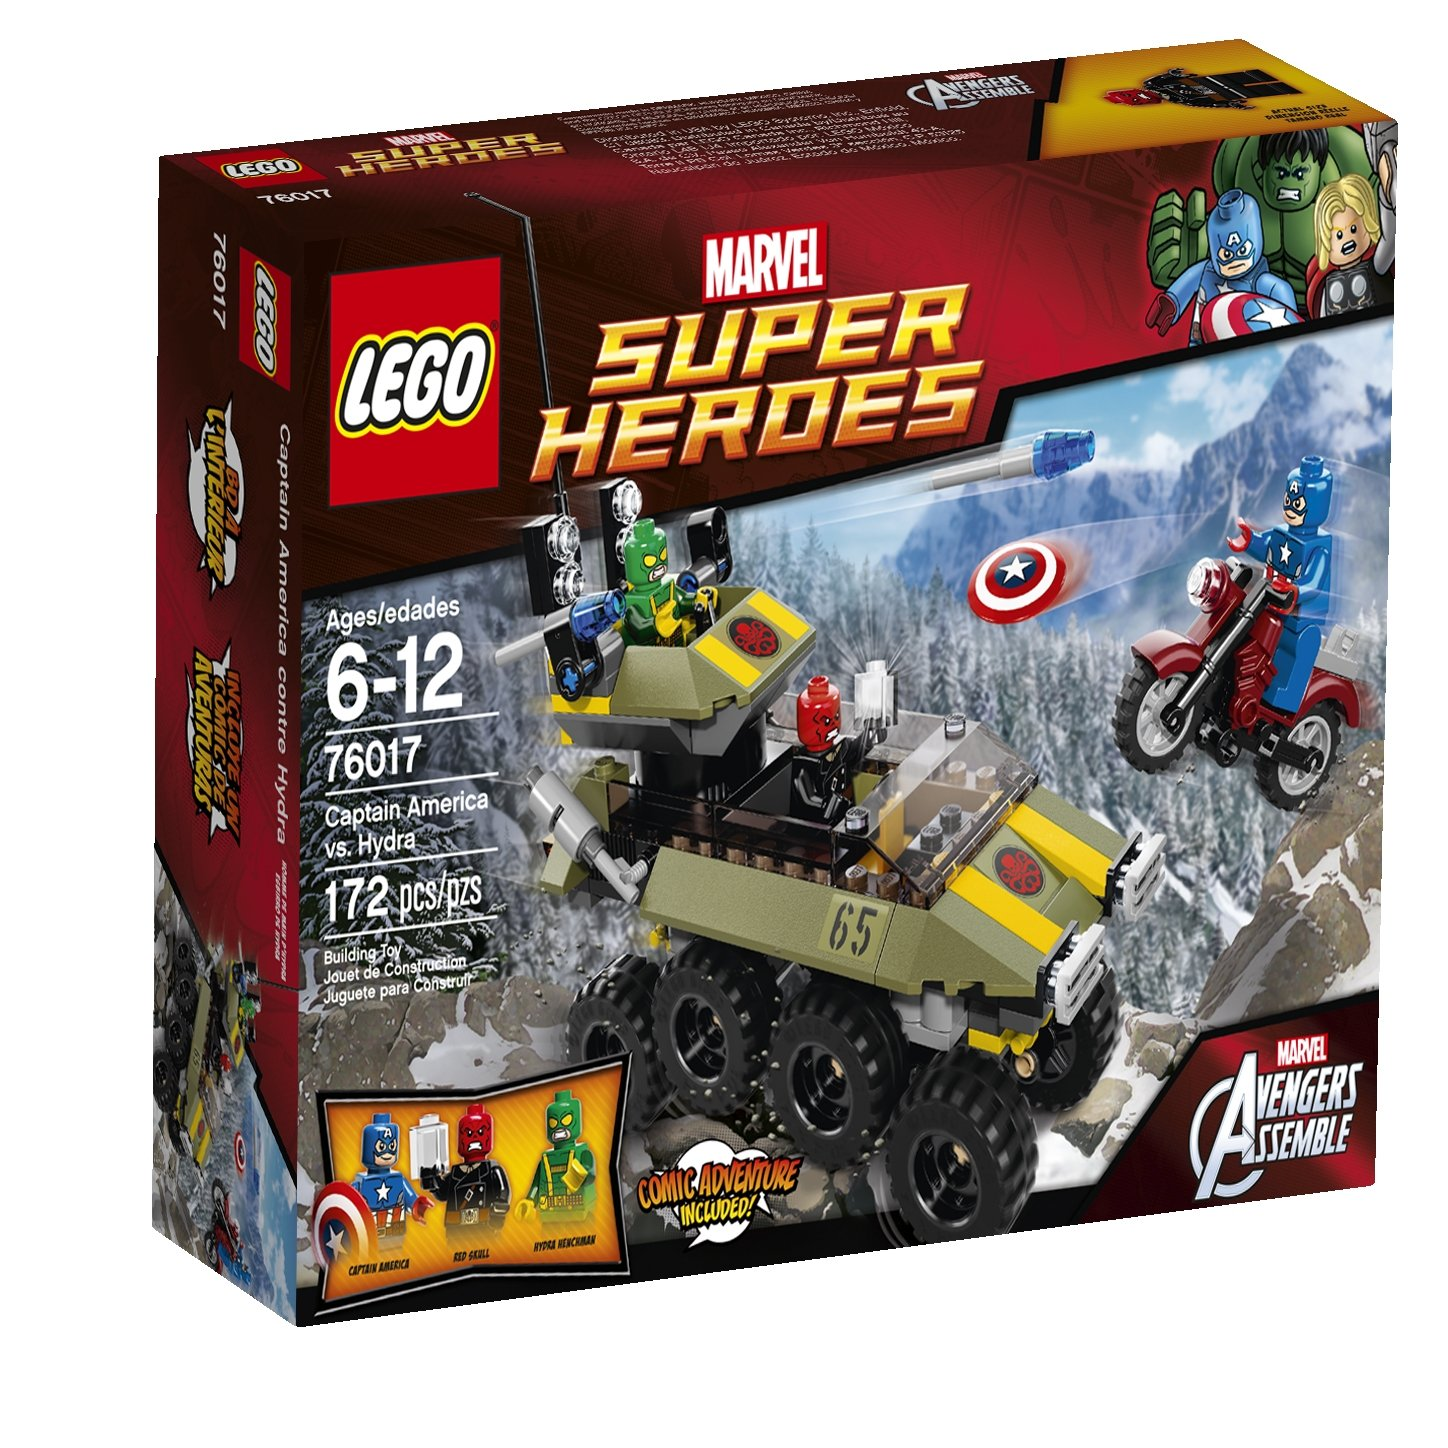 Top 9 Best LEGO Captain America Sets Reviews in 2020 5